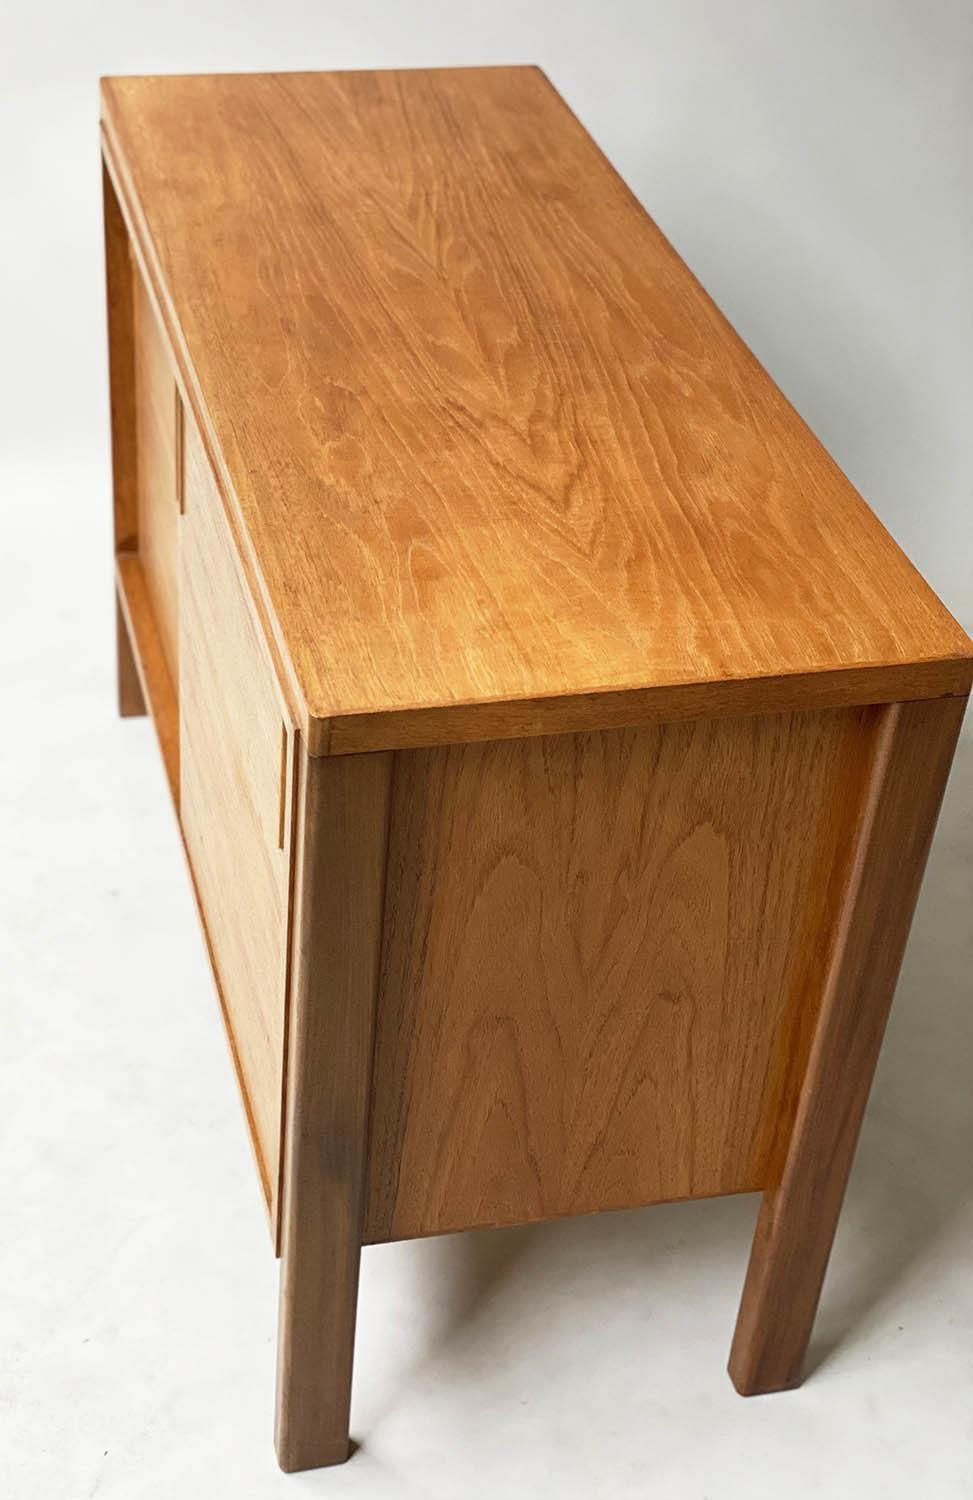 GORDON RUSSELL SIDEBOARD, 1960's walnut with two sliding doors enclosing shelves stamped Gordon - Image 3 of 8